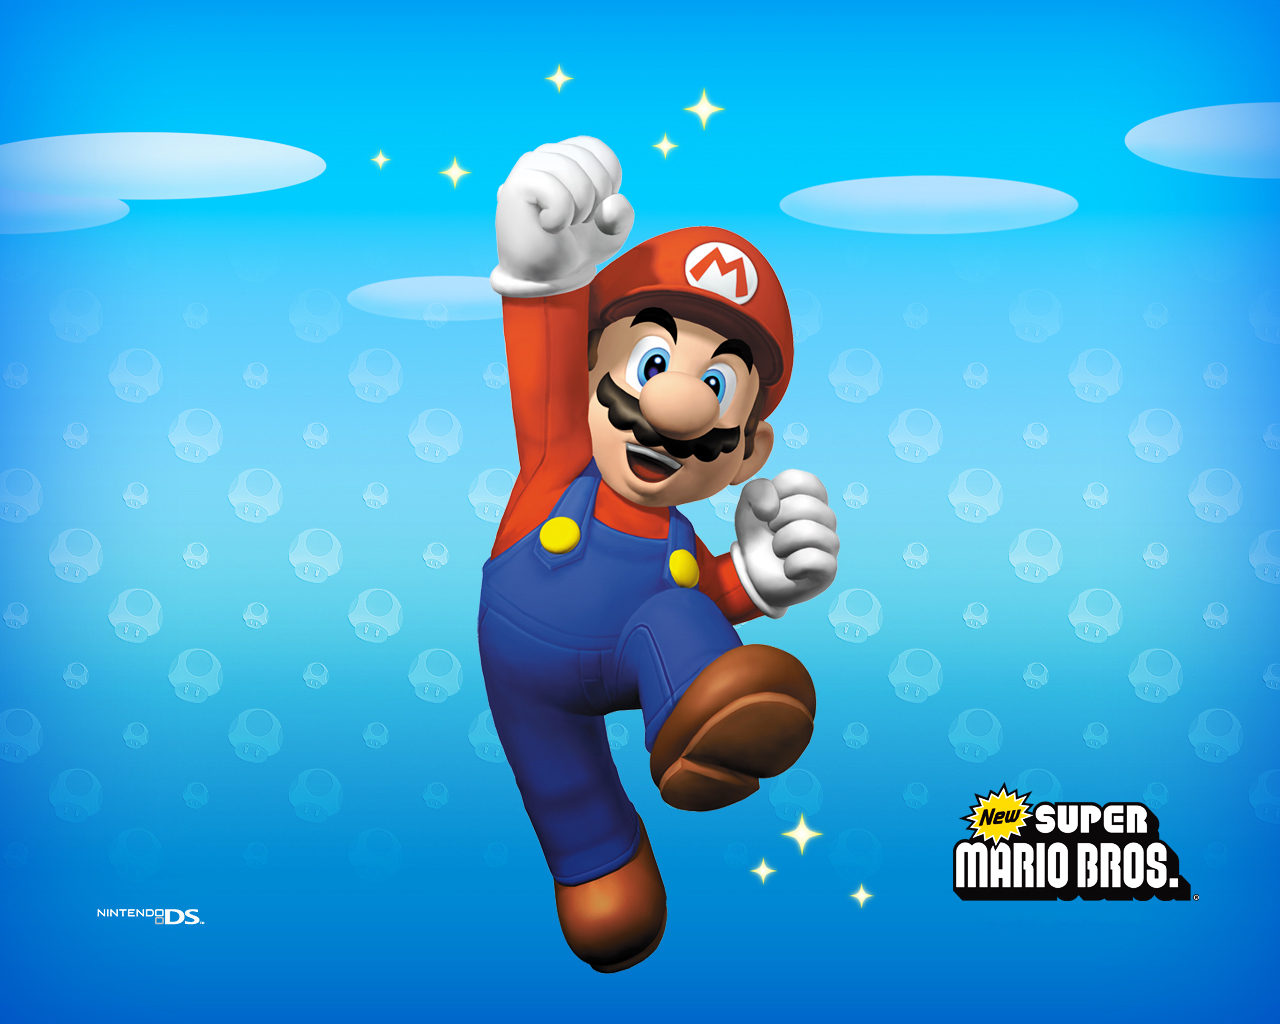 New Super Mario Brothers Wallpaper super mario bros 5314167 1280 1024 1280x1024